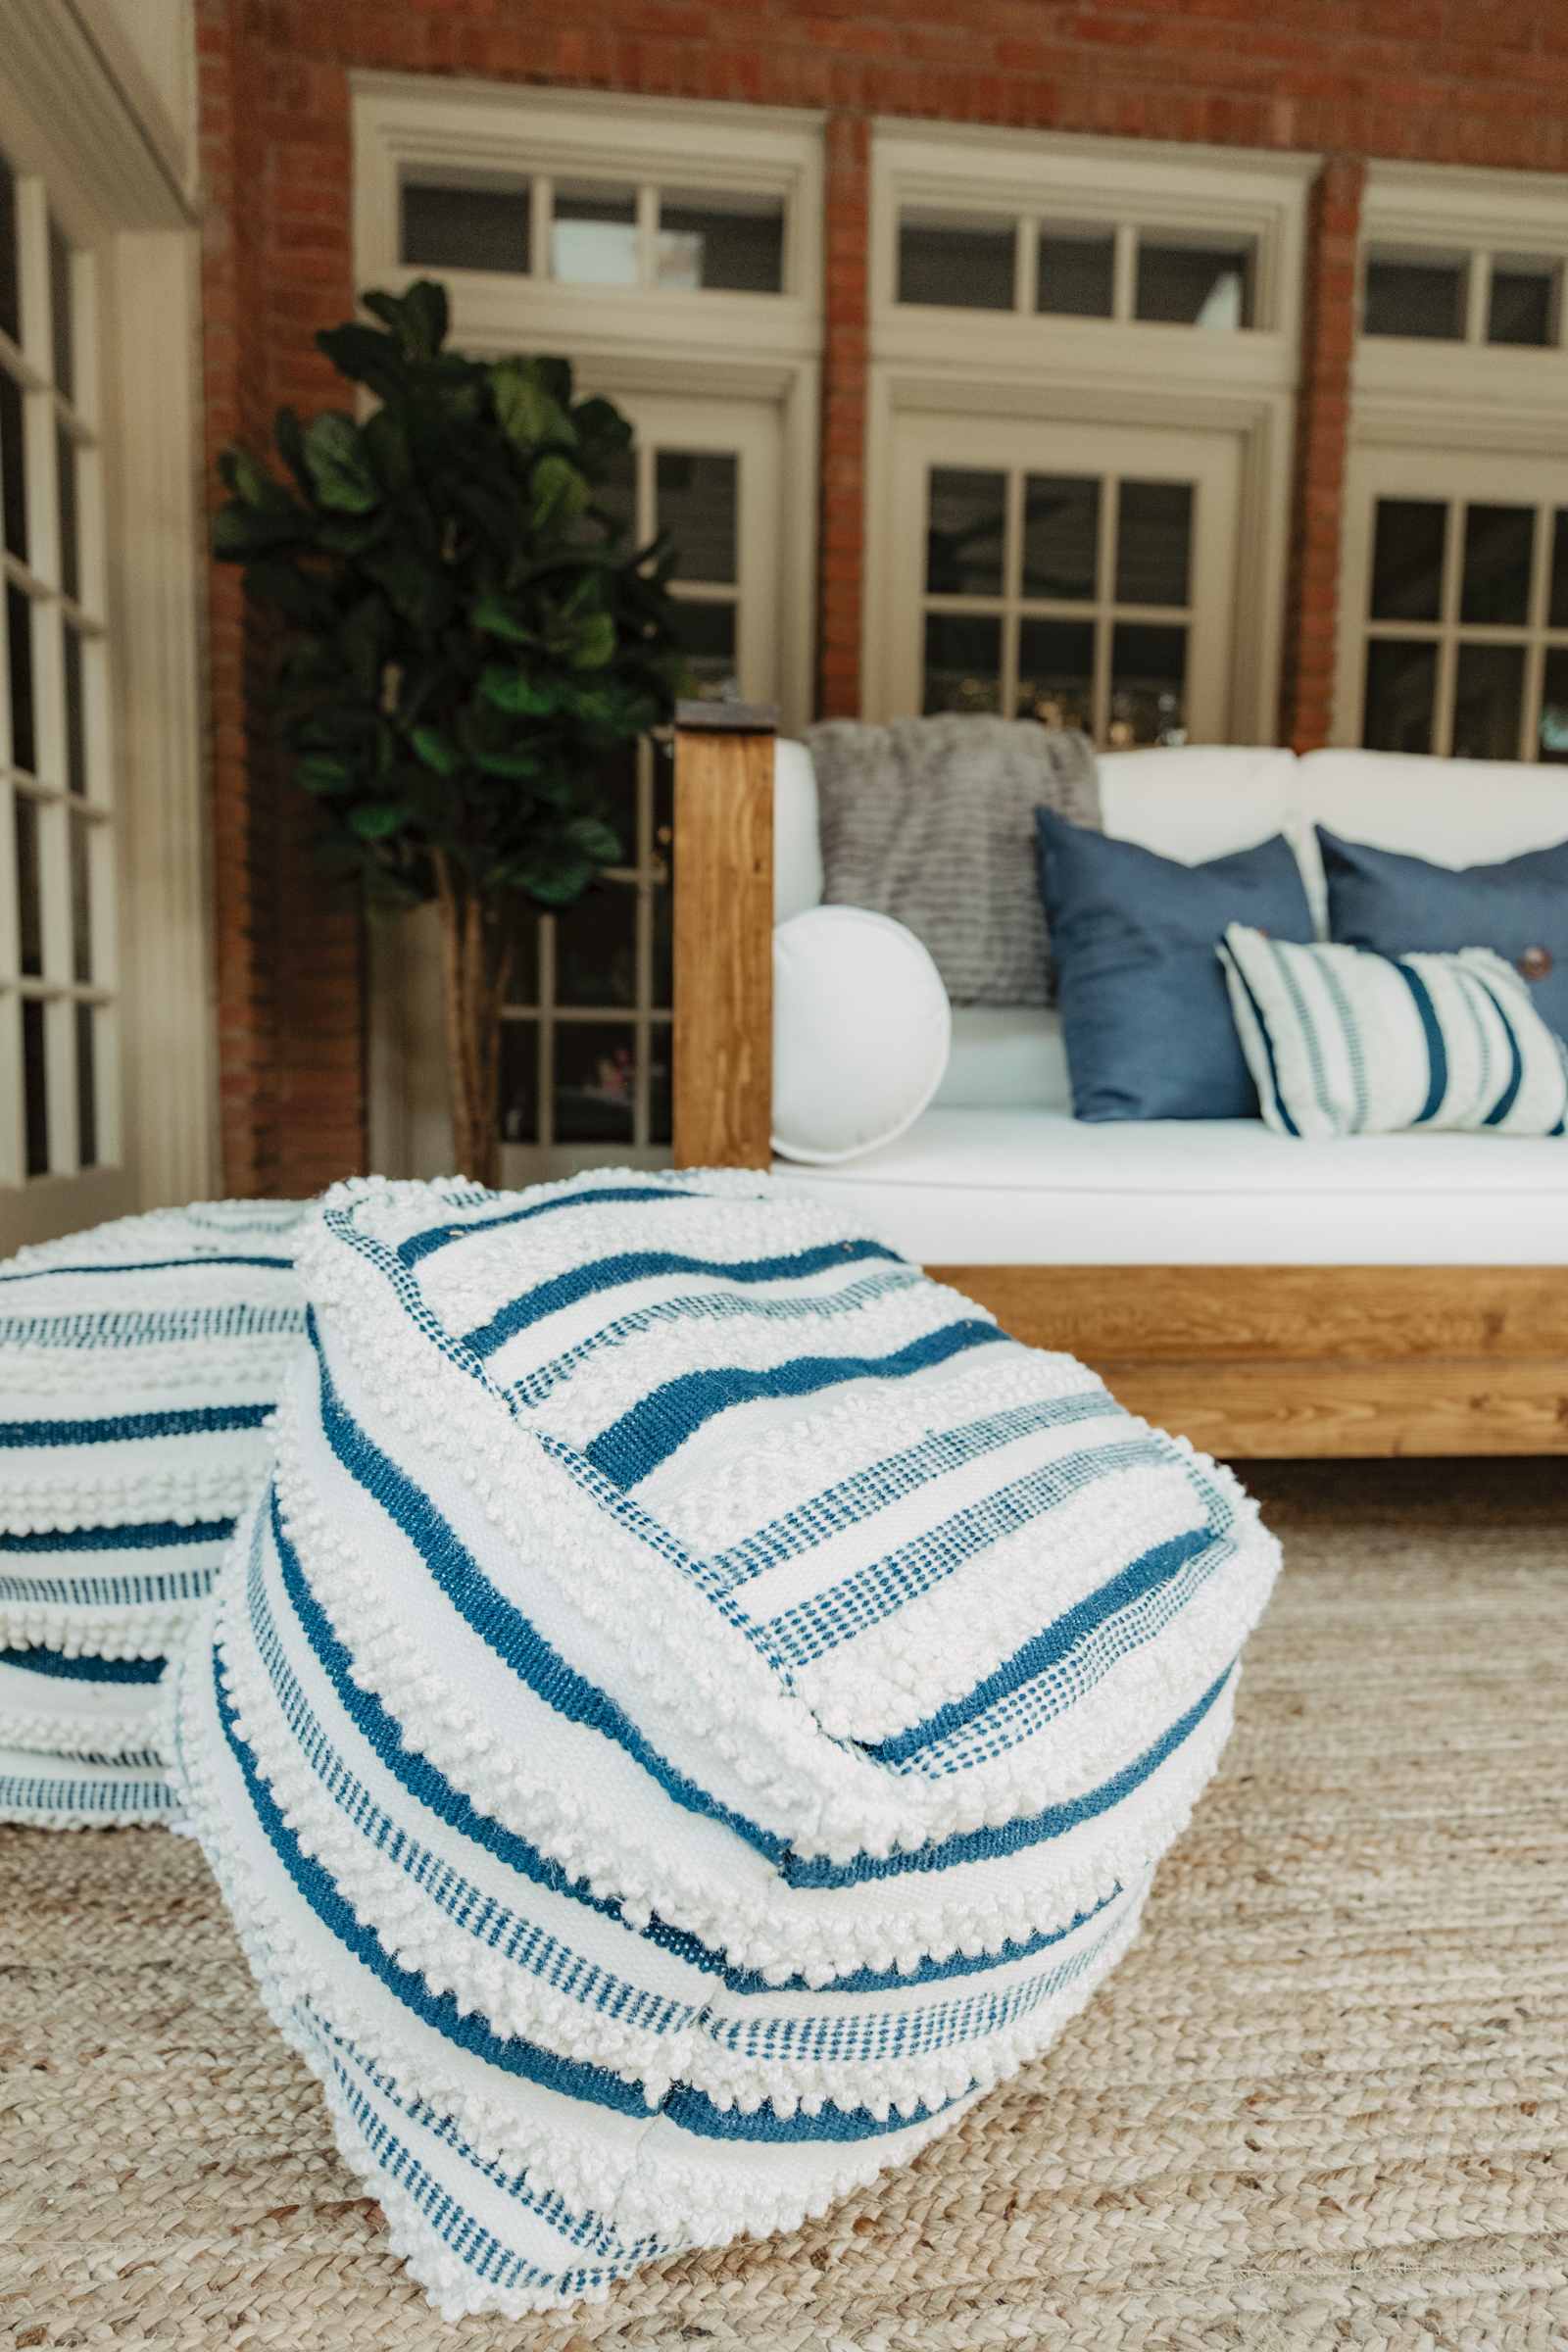 Patio decor on a budget. Elly Brown shares her swing bed for her backyard patio and how she decorated on a budget!